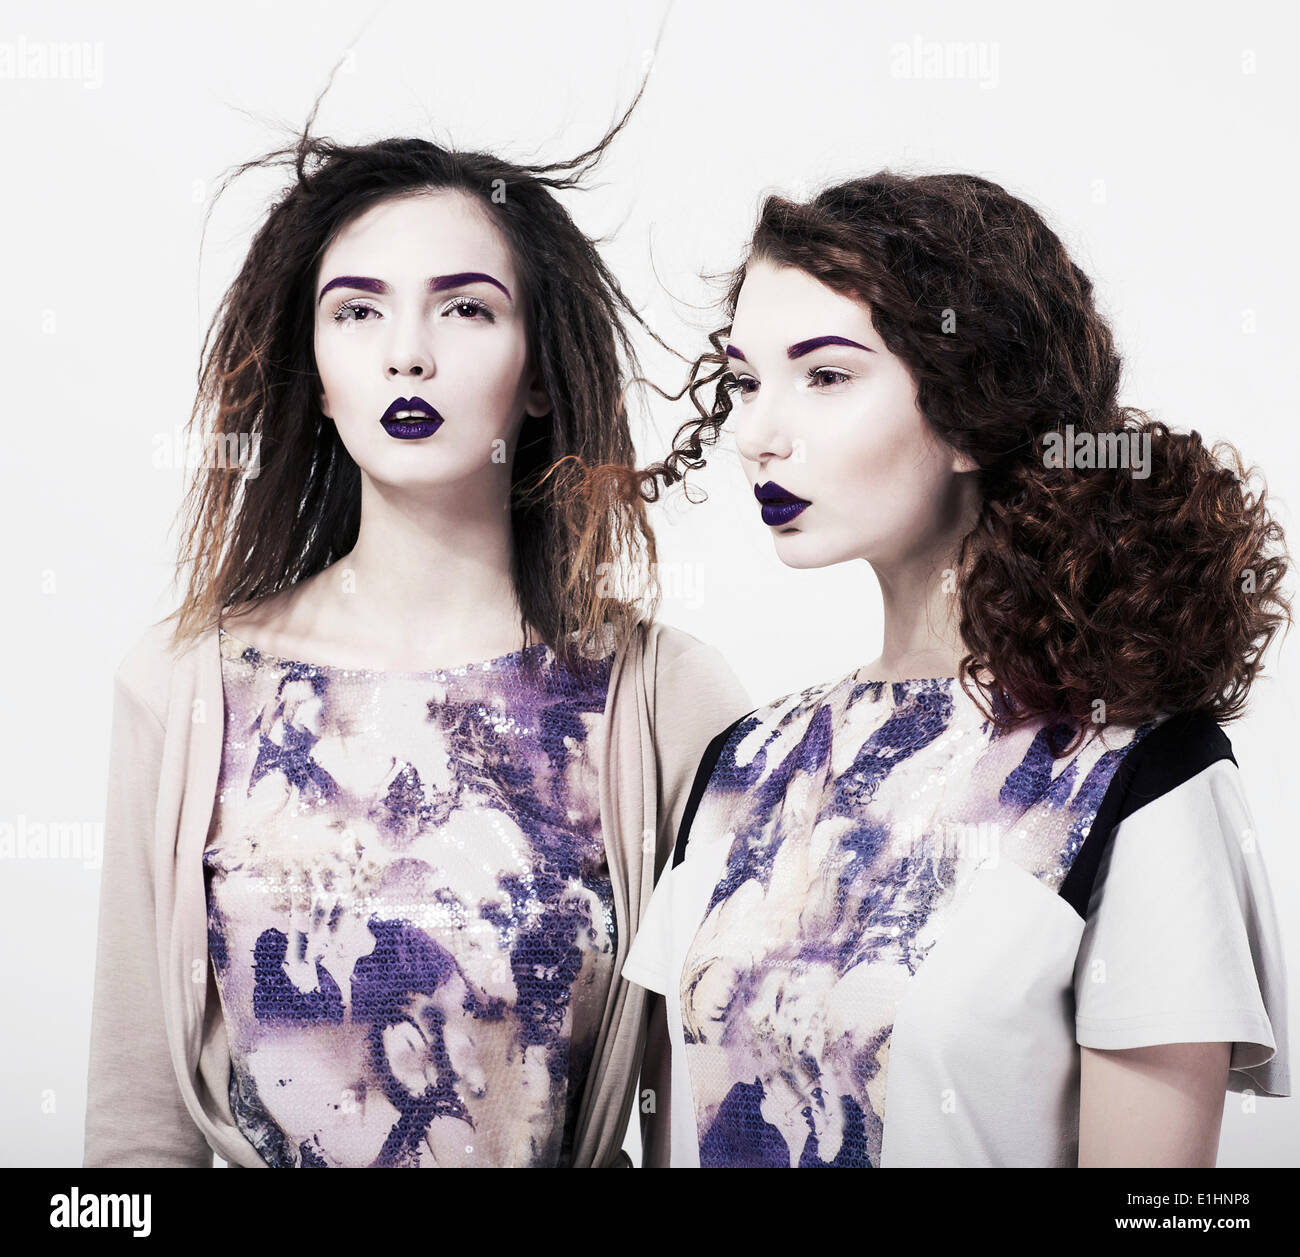 Individuality. Emo. Two Glamorous Modern Women. Trendy Brightly Makeup - Stock Image